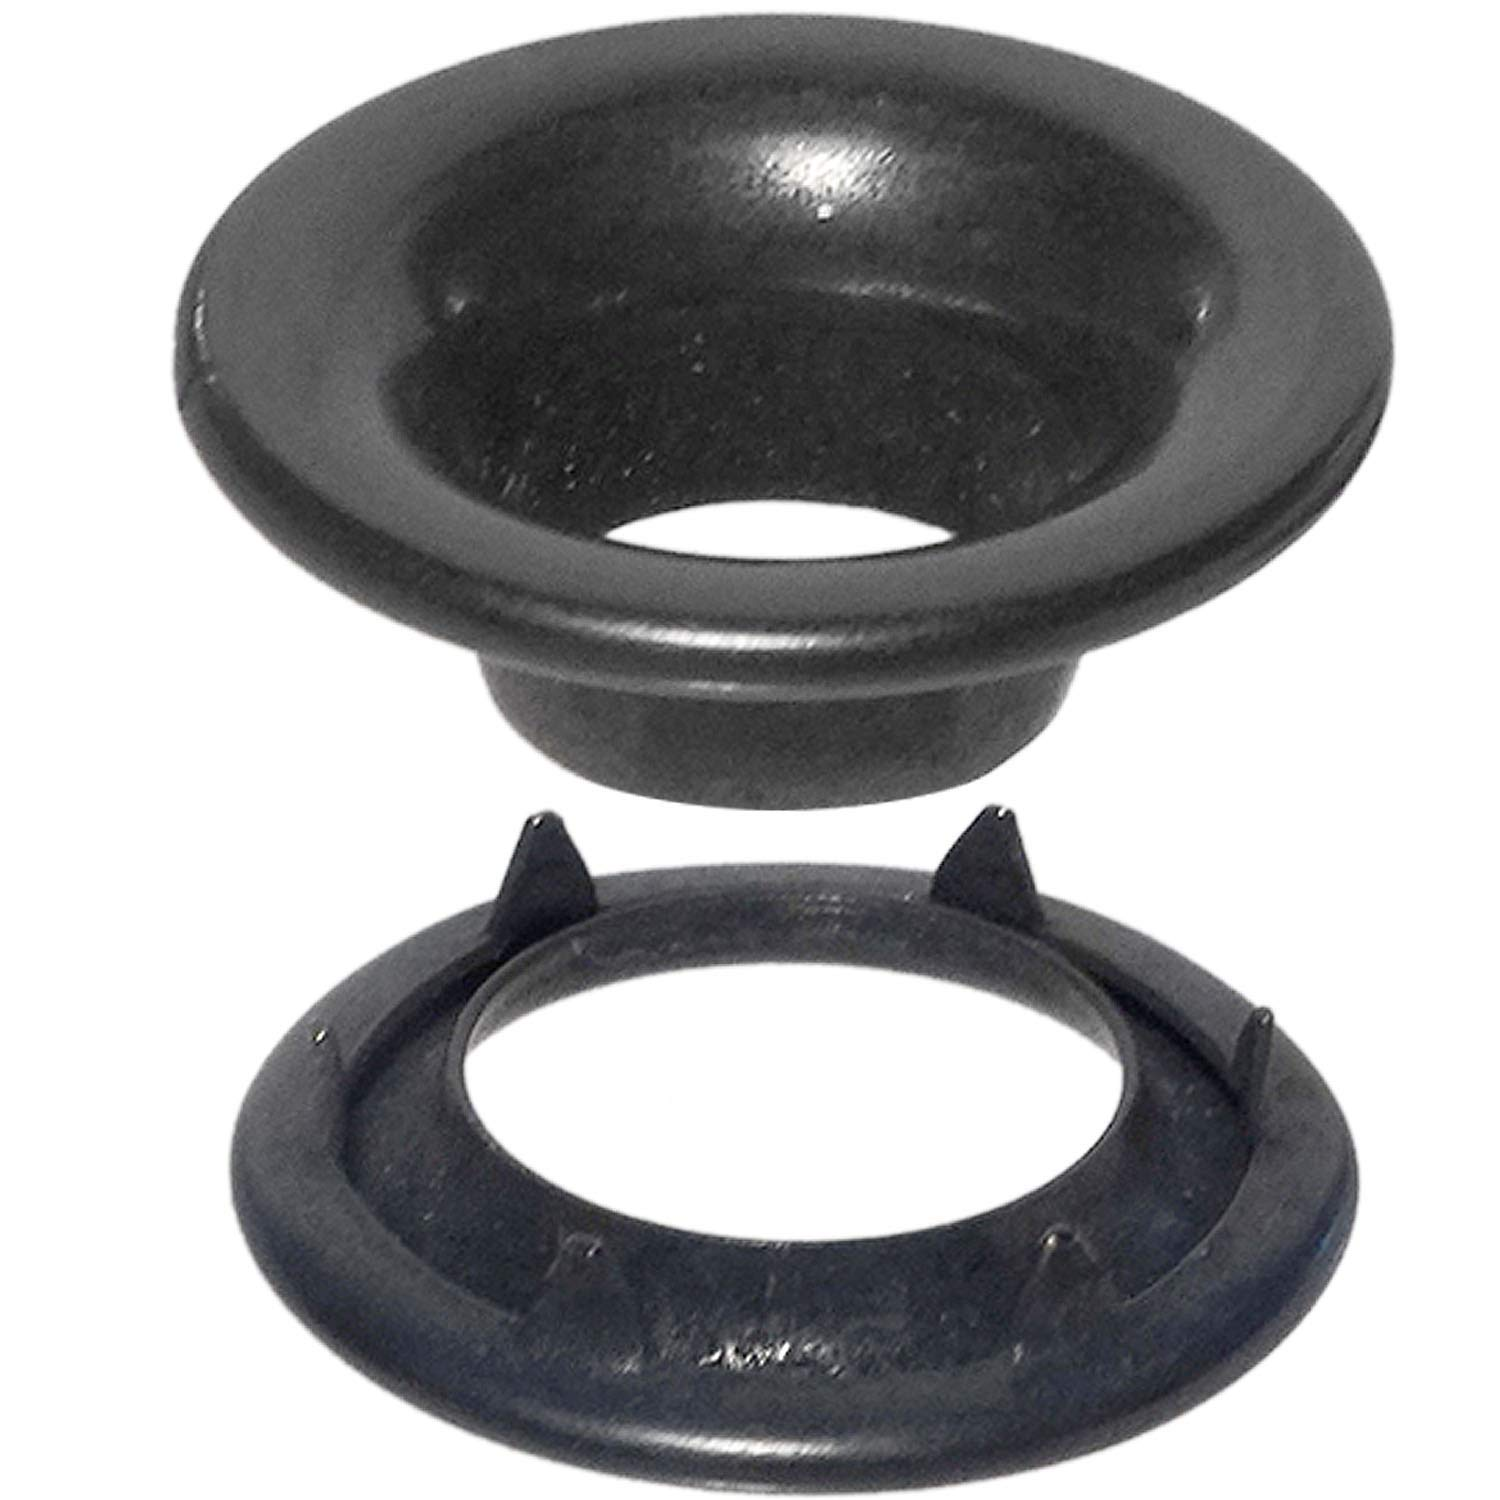 Stimpson Rolled Rim Grommet and Spur Washer Dull Black Chem Durable, Reliable, Heavy-Duty #0 Set (1,440 Pieces of Each)